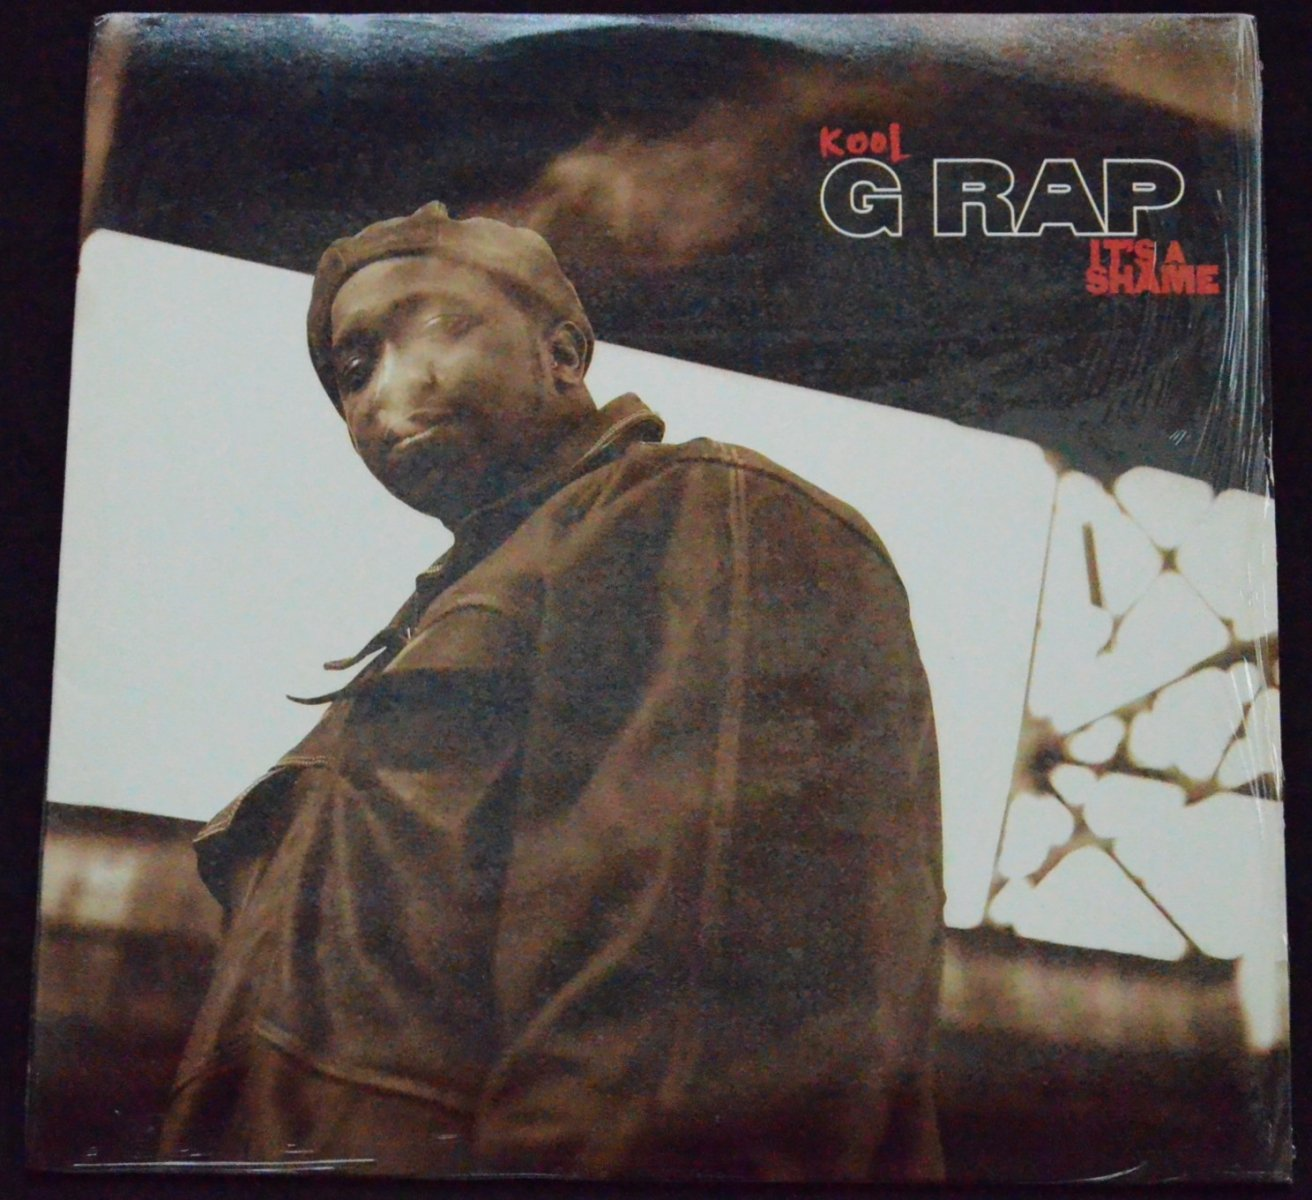 KOOL G RAP ‎/ IT'S A SHAME (12